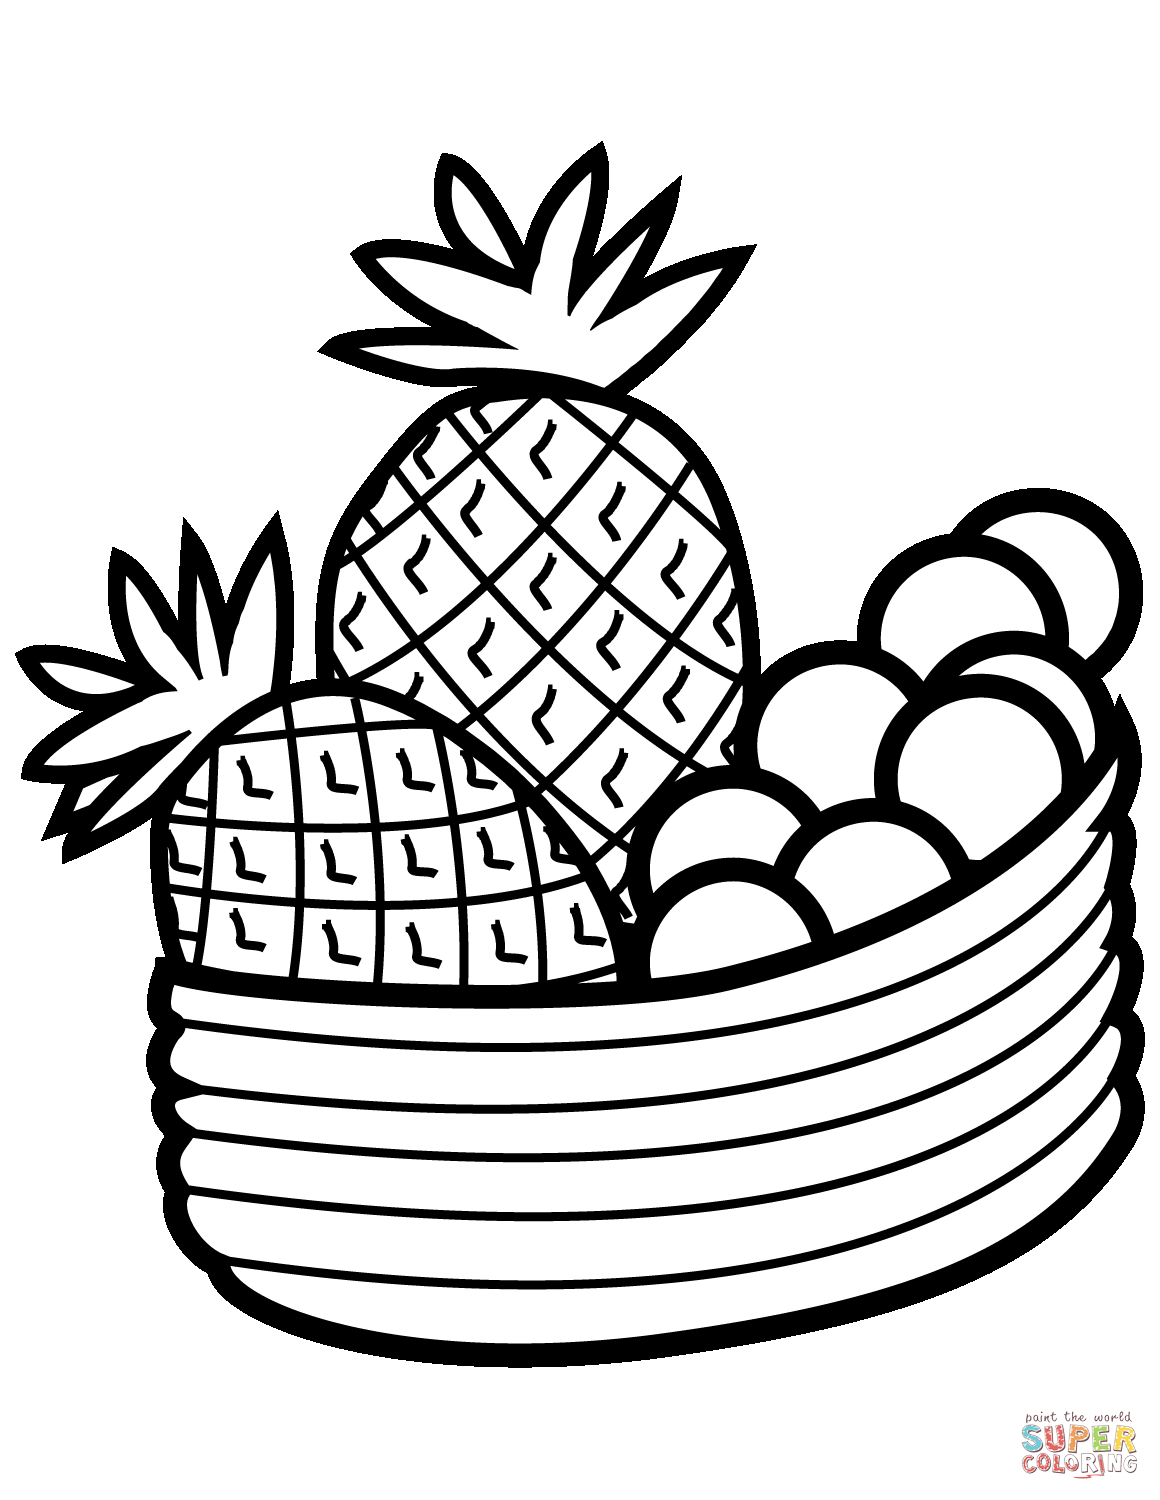 bowl of fruit drawing fruit bowls drawing at getdrawings free download bowl fruit of drawing